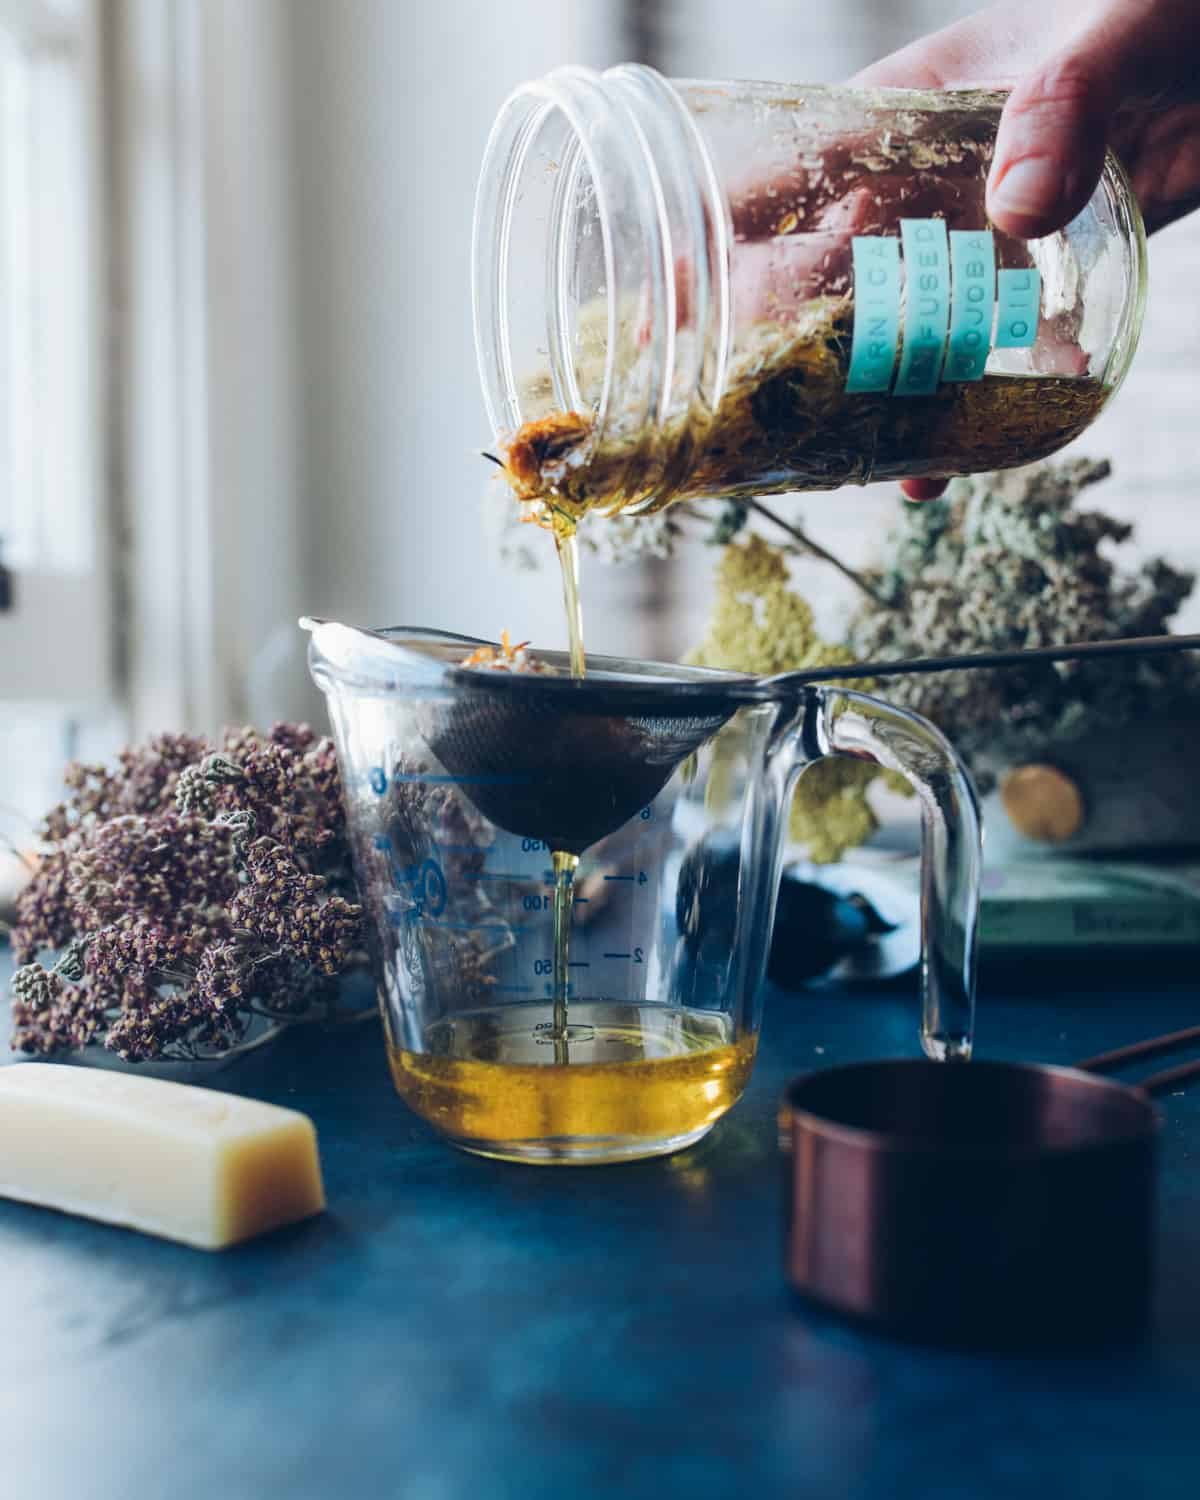 A labeled jar of infused arnica flower oil pouring into a strainer resting in a clear dish, straining the arnica flowers from the oil. On a dark counter, with dried yarrow and a stick of beeswax in the background.